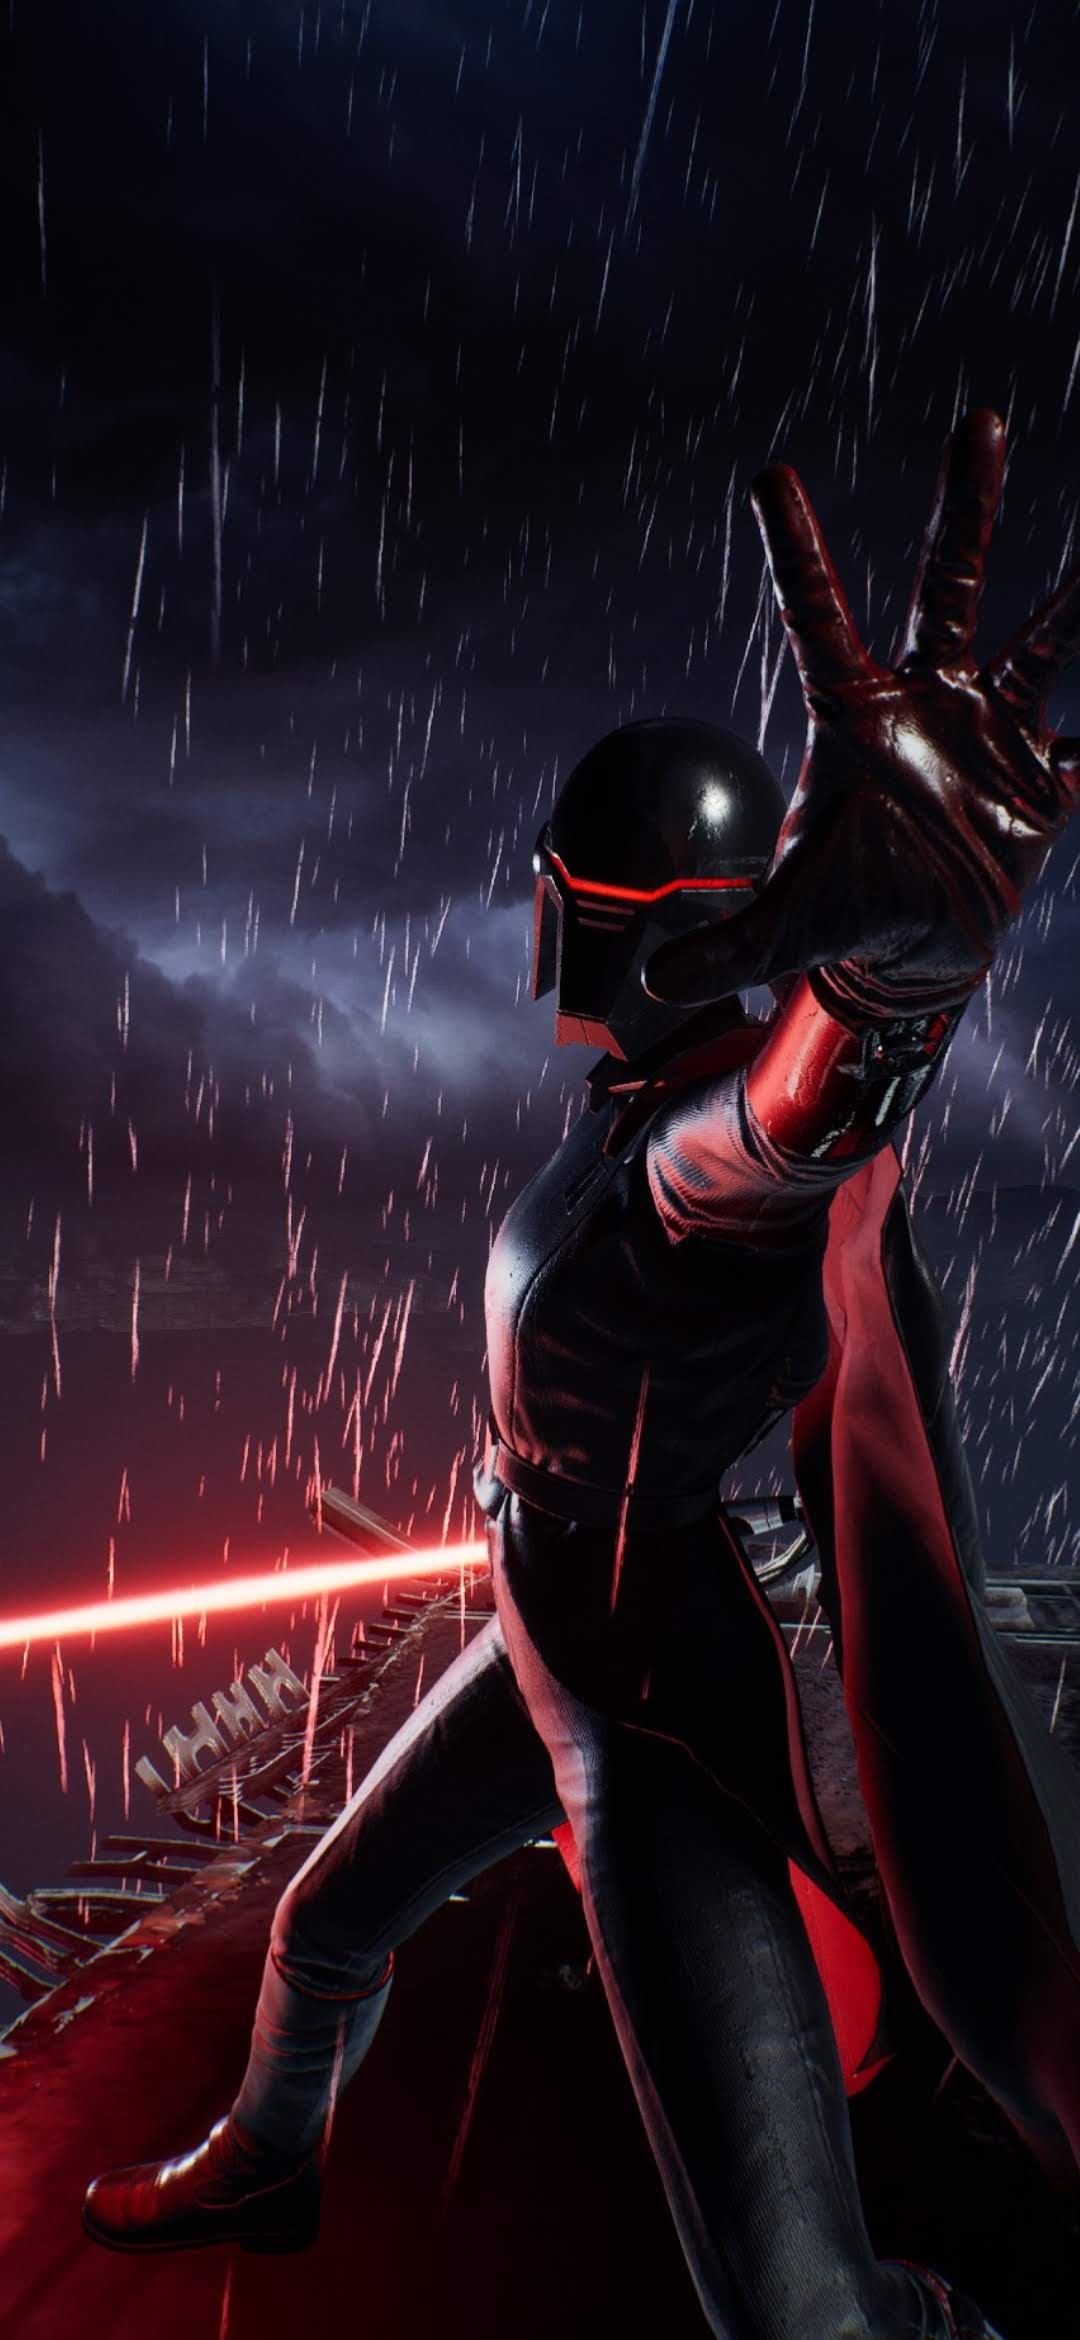 Star Wars Second Sister Inquisitor Wallpaper Wallpapers For Tech